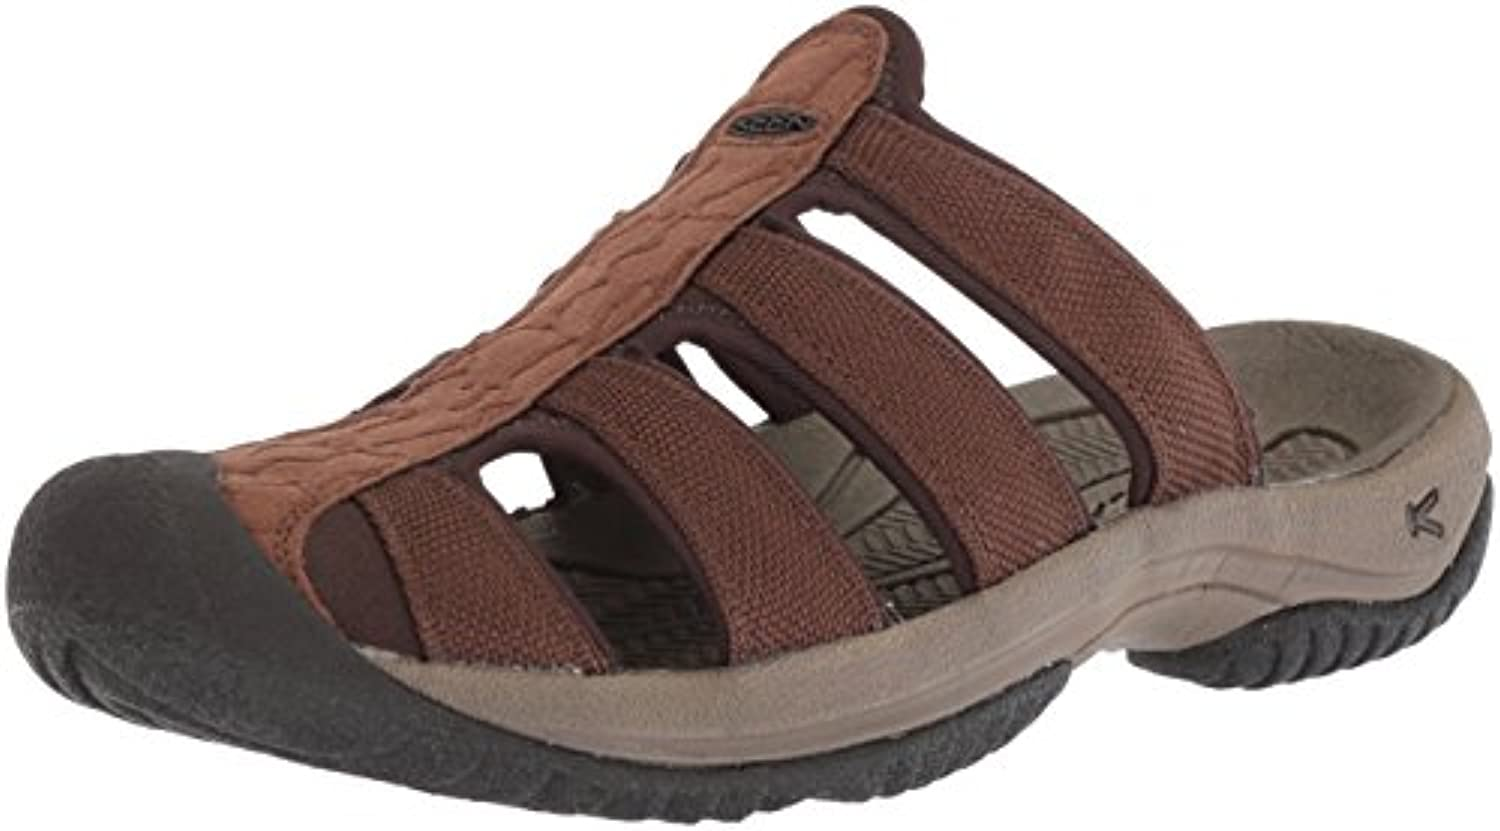 Keen Aruba II Sandals Men Dark Earth/Mulch Schuhgröße US 13 | EU 47 2018 Sandalen